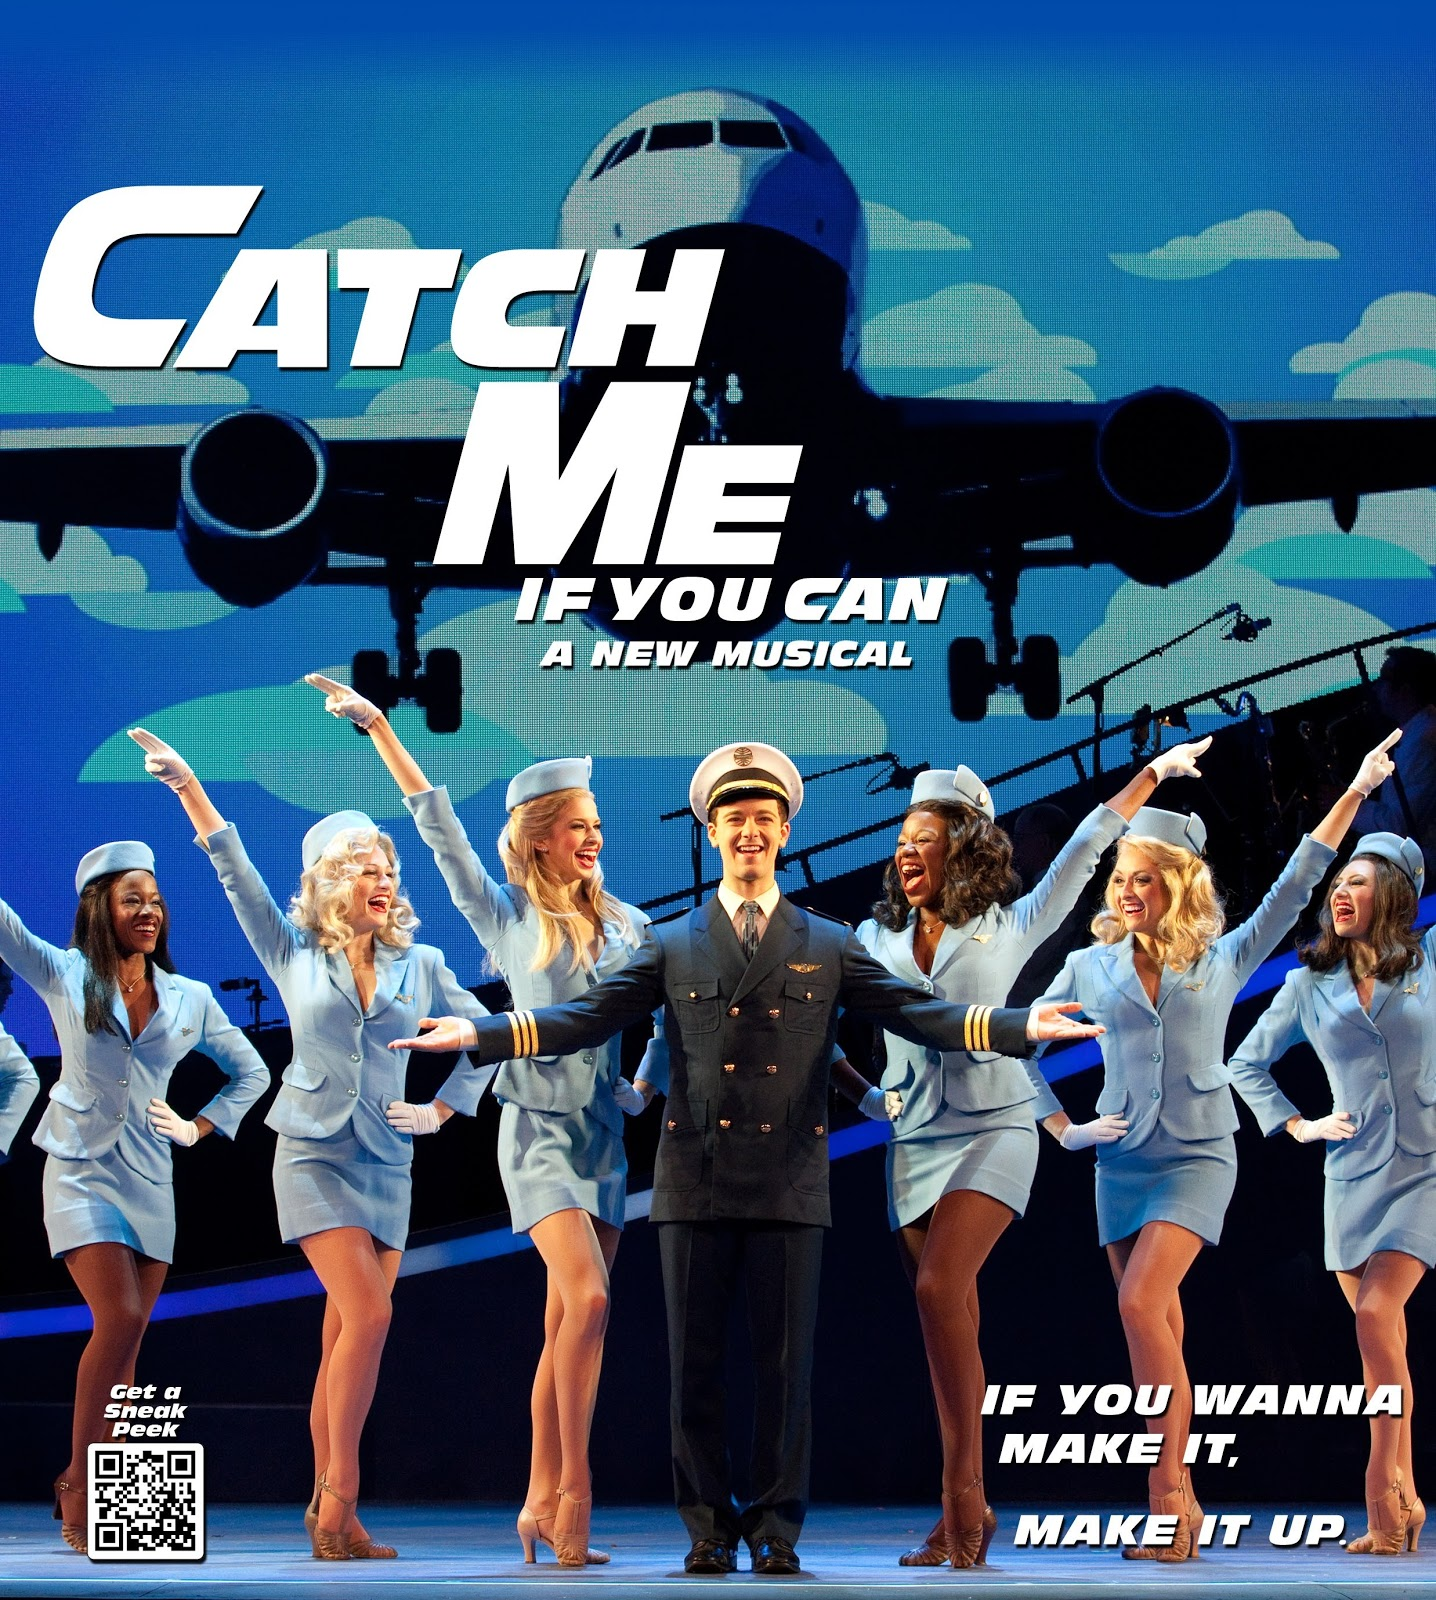 Catch If You Can